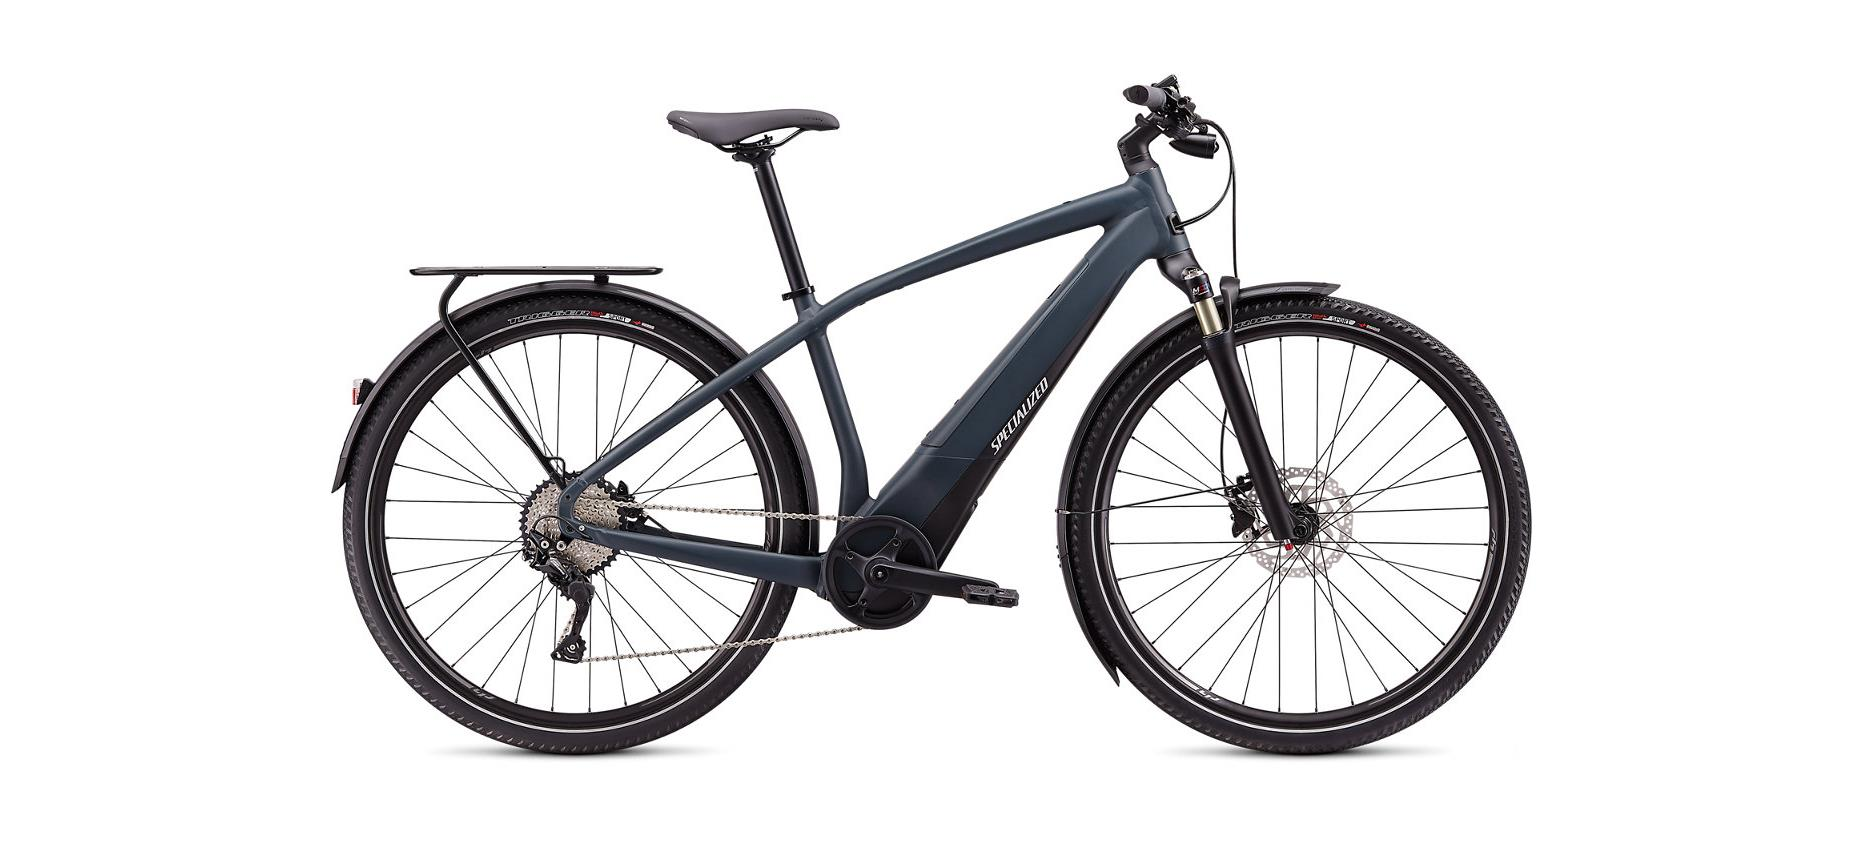 Specialized Turbo Vado 4.0 Carbon / Black / Liquid Silver 2020 - 28 500 Wh -  M